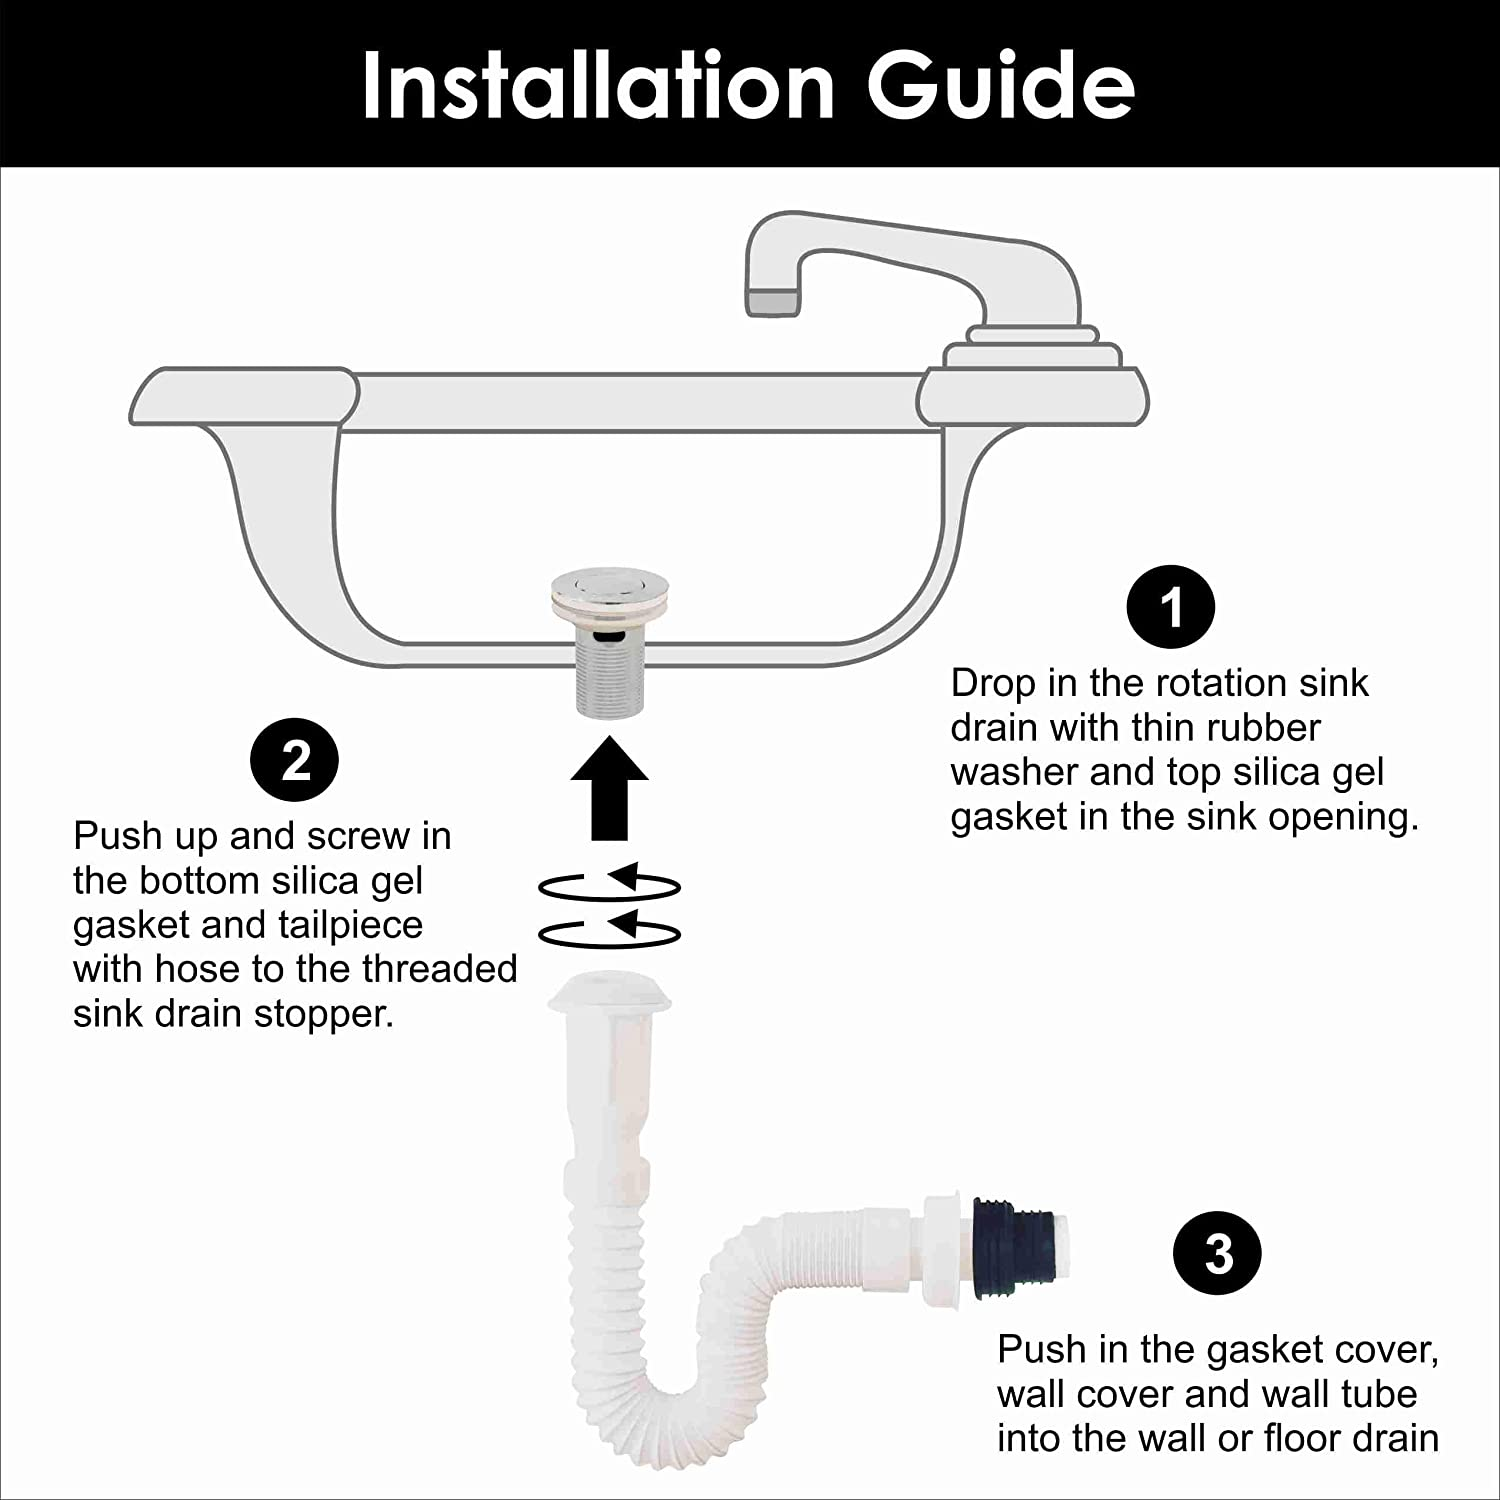 Universal Complete Bathroom Sink Flexible Water Drain Pipe Kit W Overflow Stainless Steel Stopper Adjustable Expandable Plastic White Hose Snappy P Trap Plumbing Fitting For Vessel Vanity Basin Bathroom Sink Bathtub